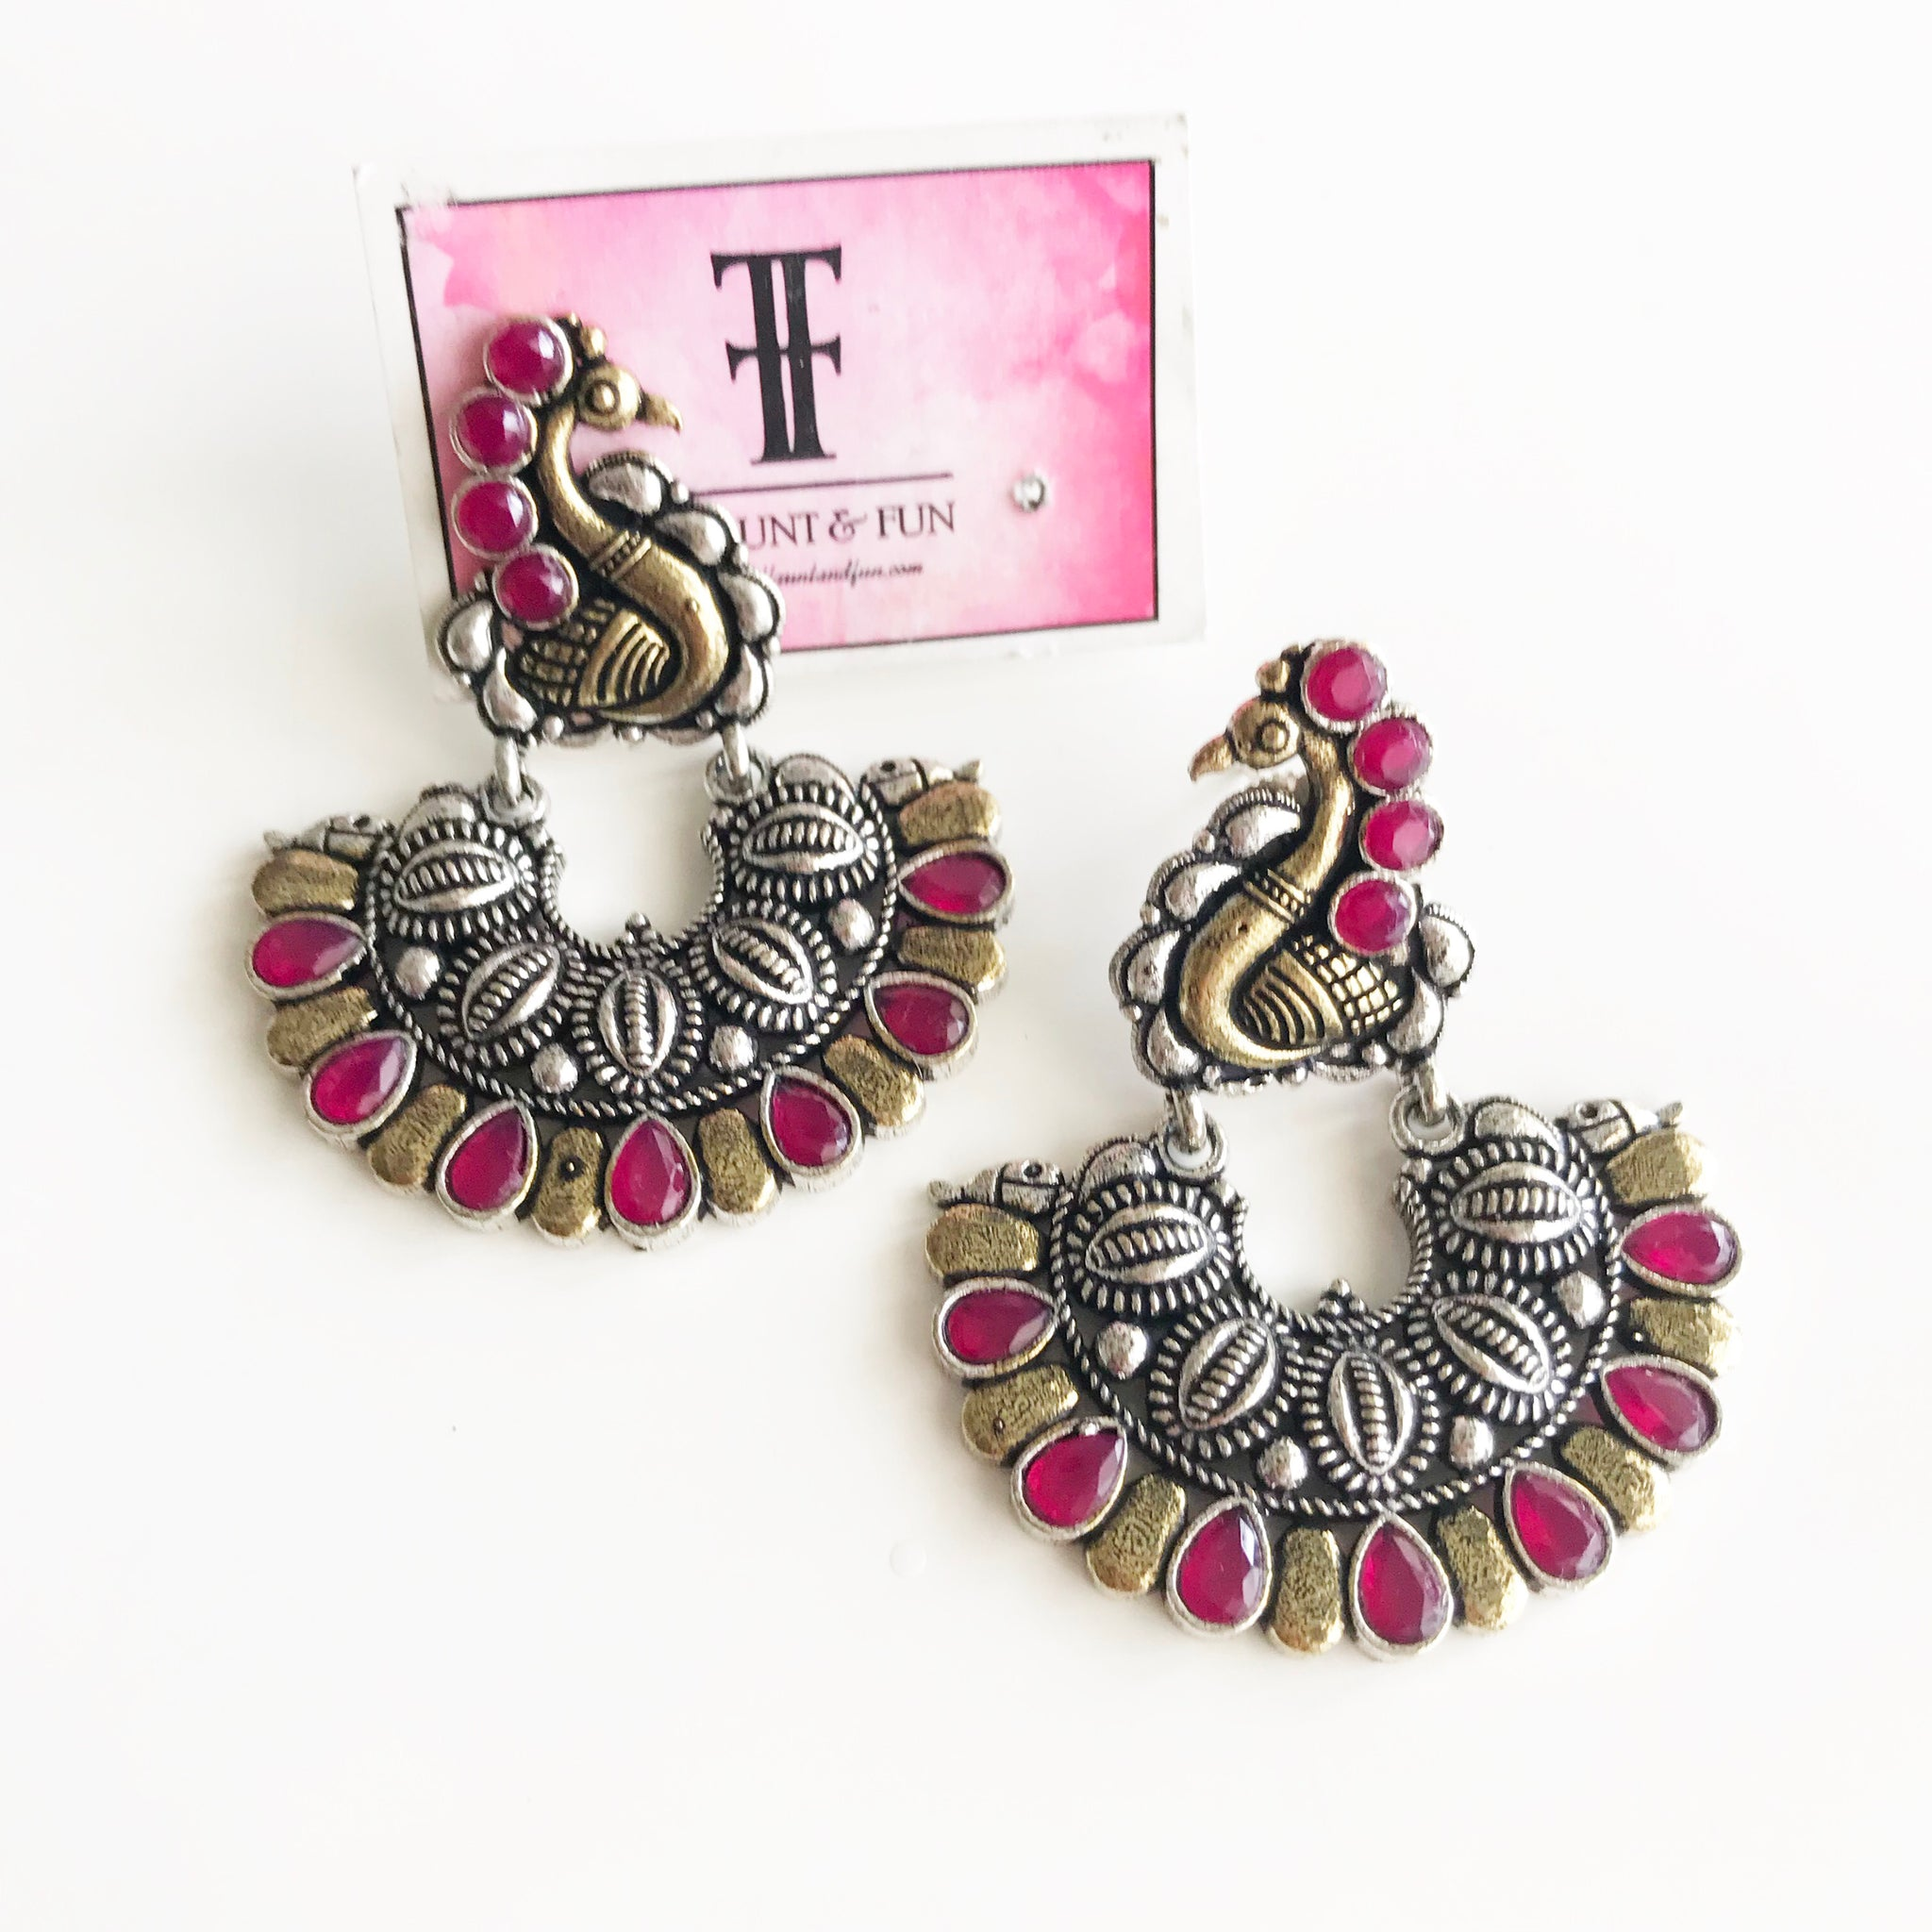 PEACOCK TWO TONE EARRINGS - Flauntandfun